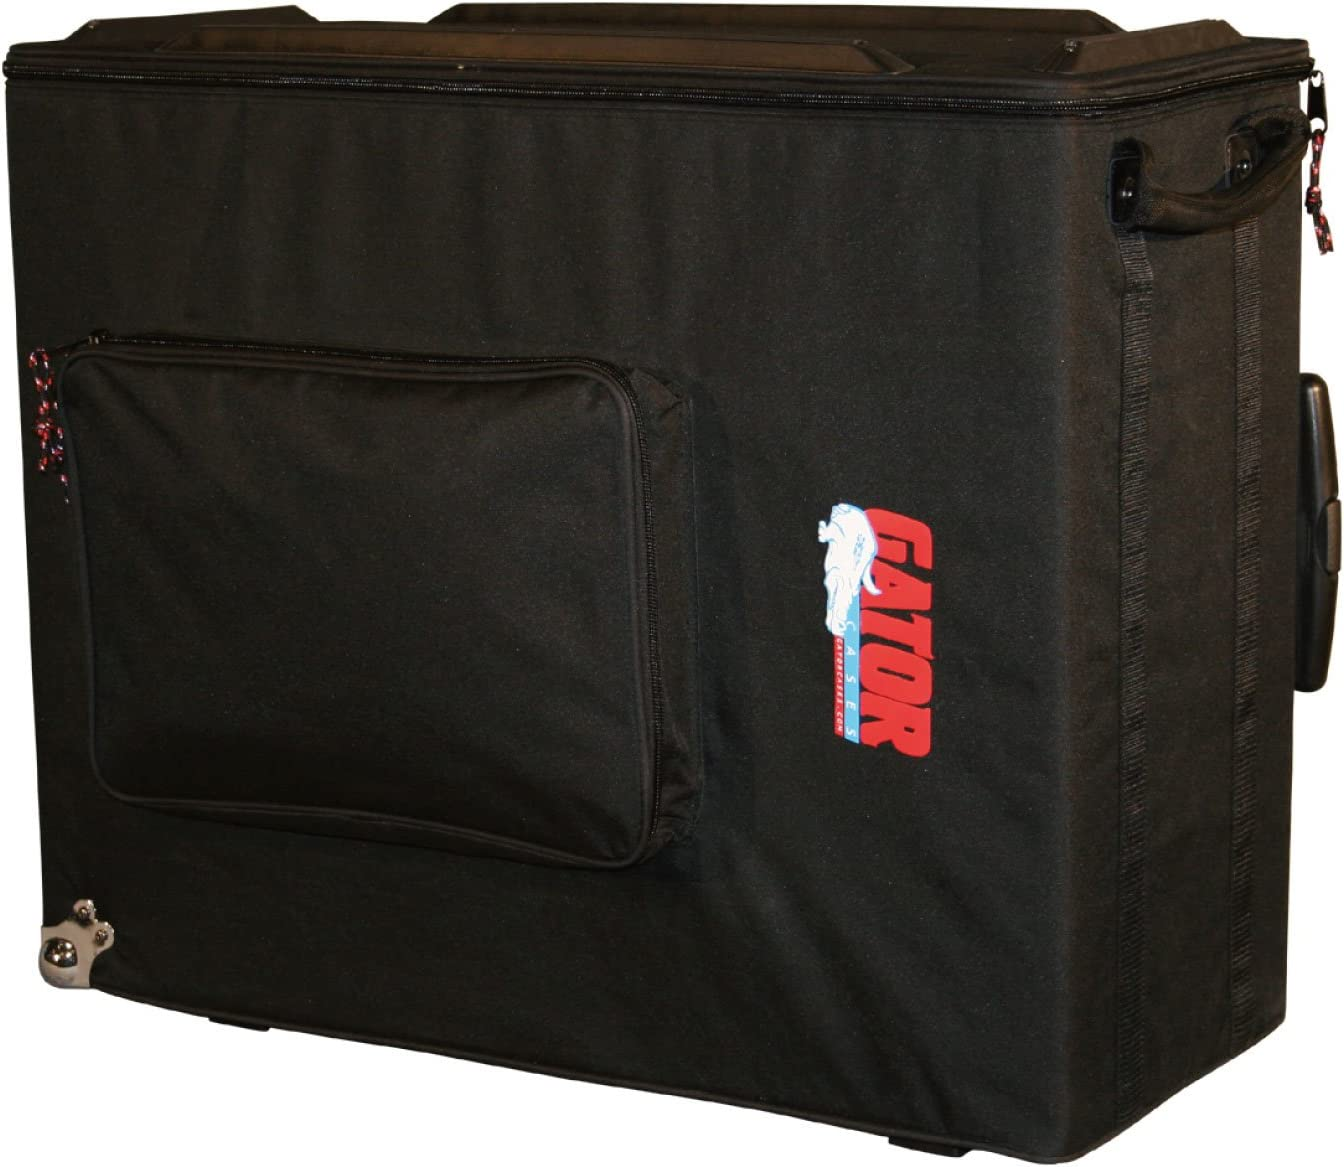 G-112A Gator Cases Lightweight Guitar Amplifier Case with Pull Handle and Wheels; Fits 1x12 Combo Amps